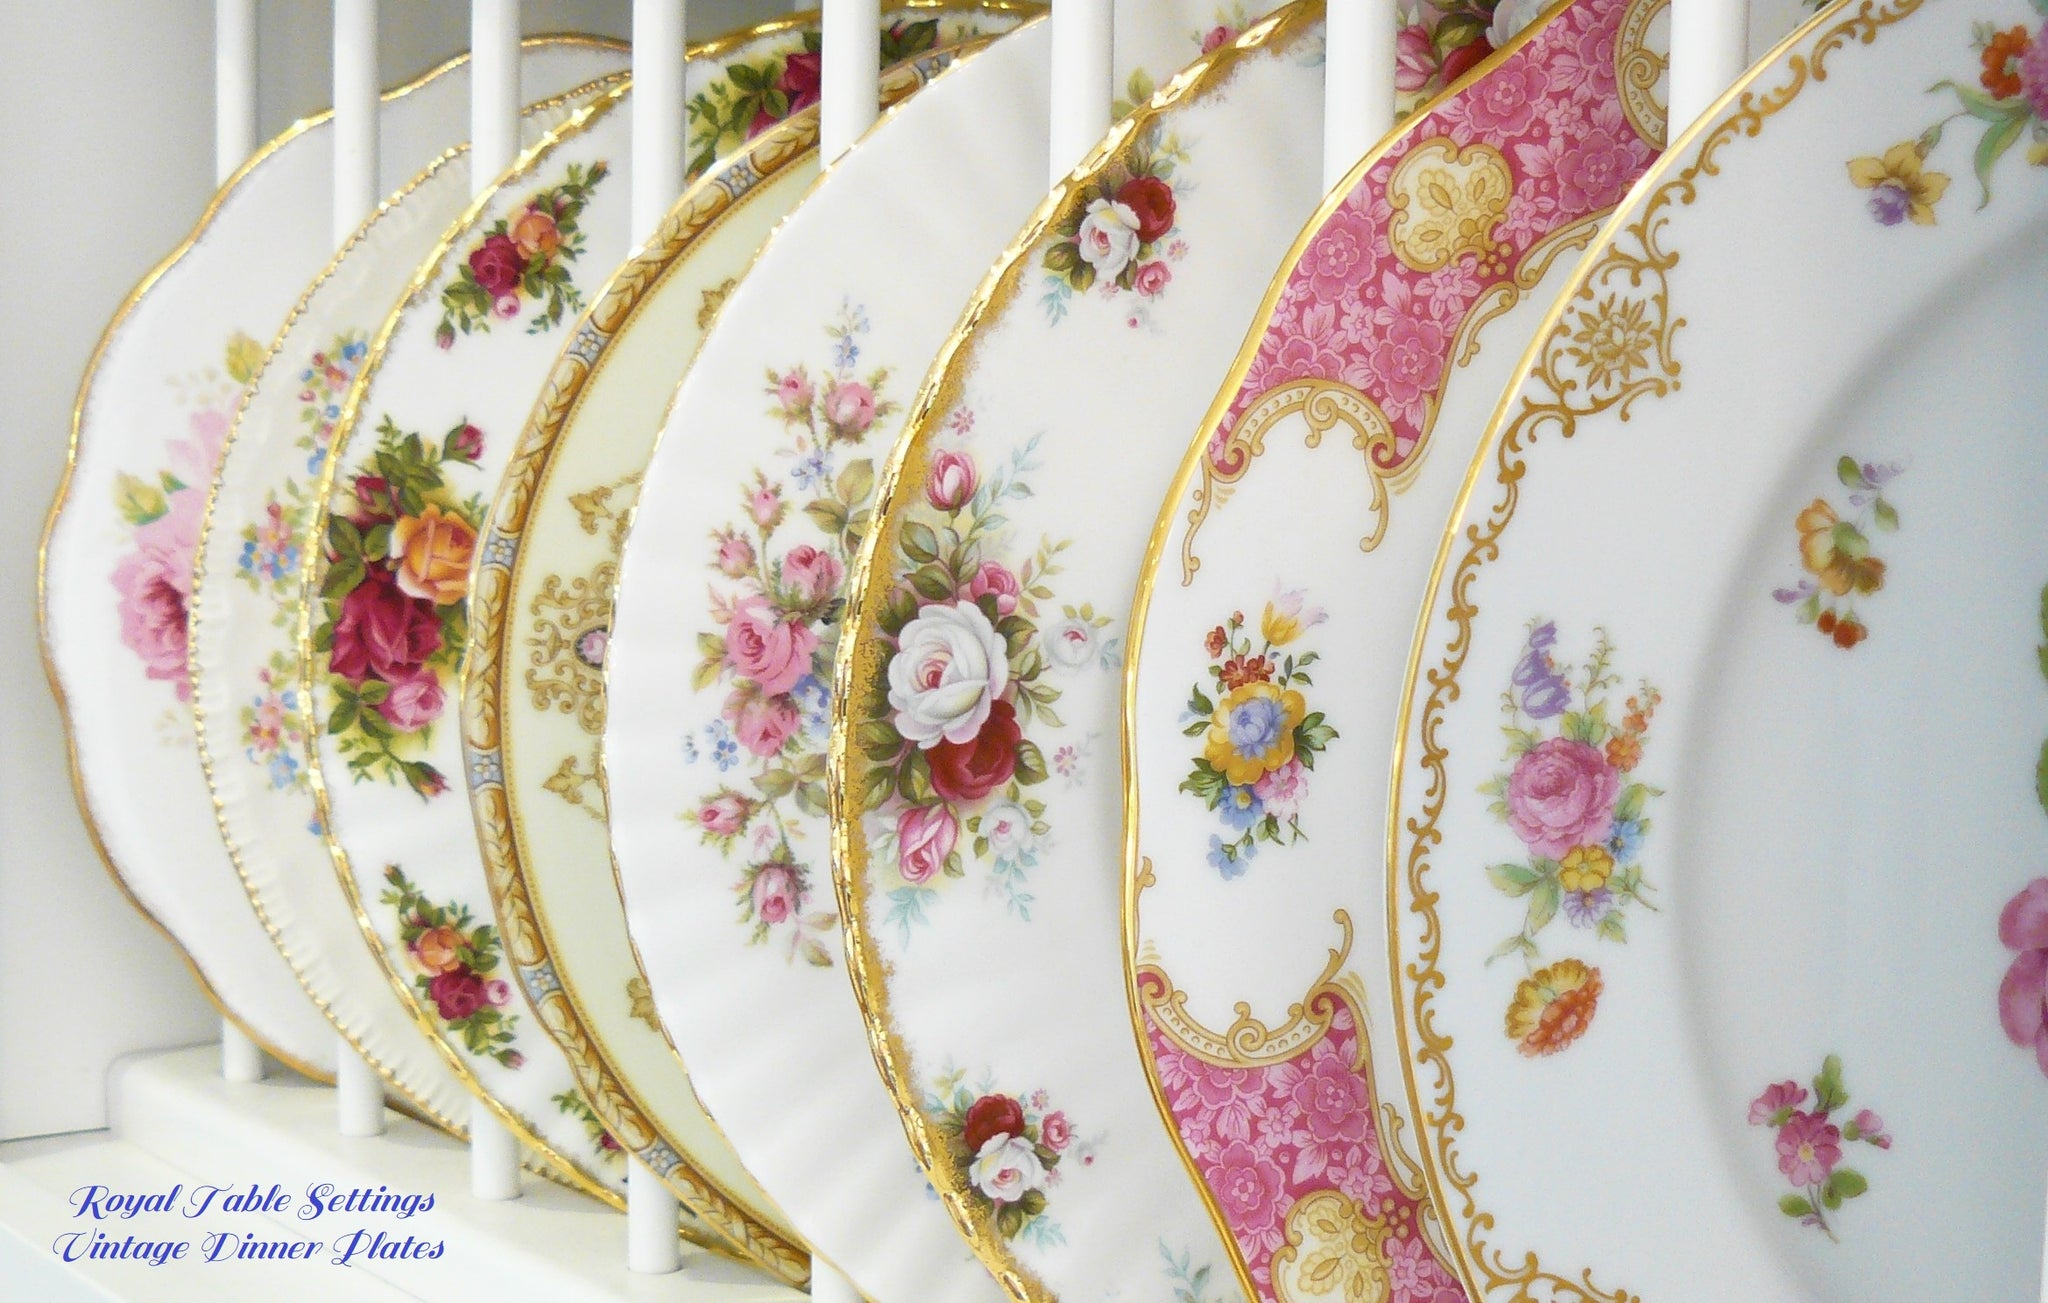 Royal Table Settings Vintage Dinner Plates. Beautiful Vintage china rentals for any type of event!    Vintage Party Rentals. China rentals. Dinner Plate Rentals.